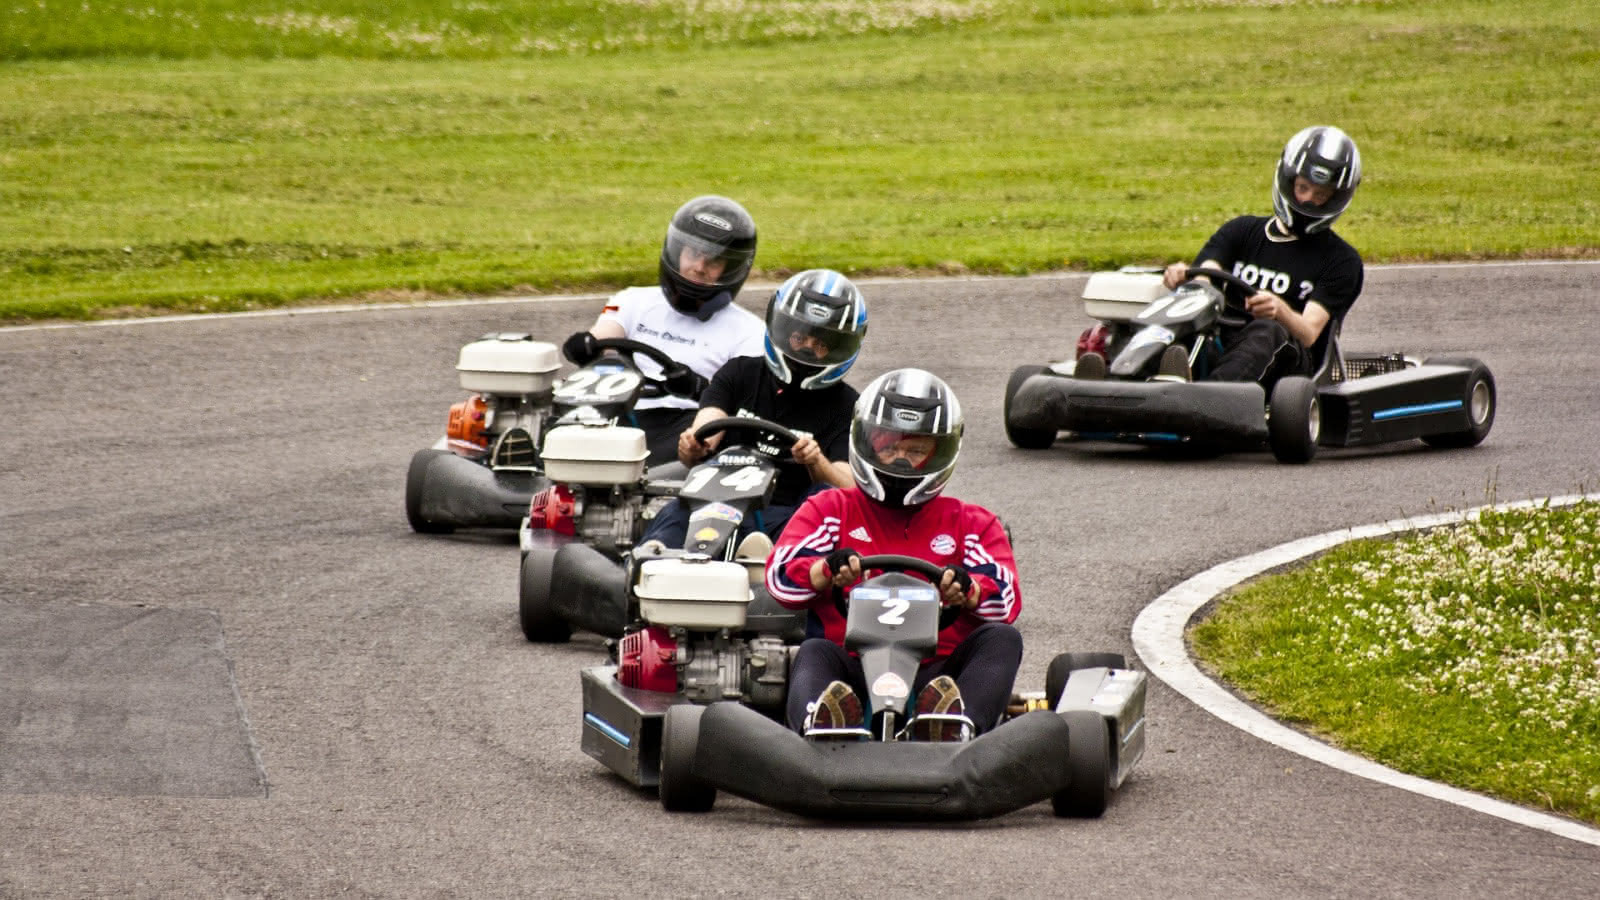 Loisir karting Montalivet